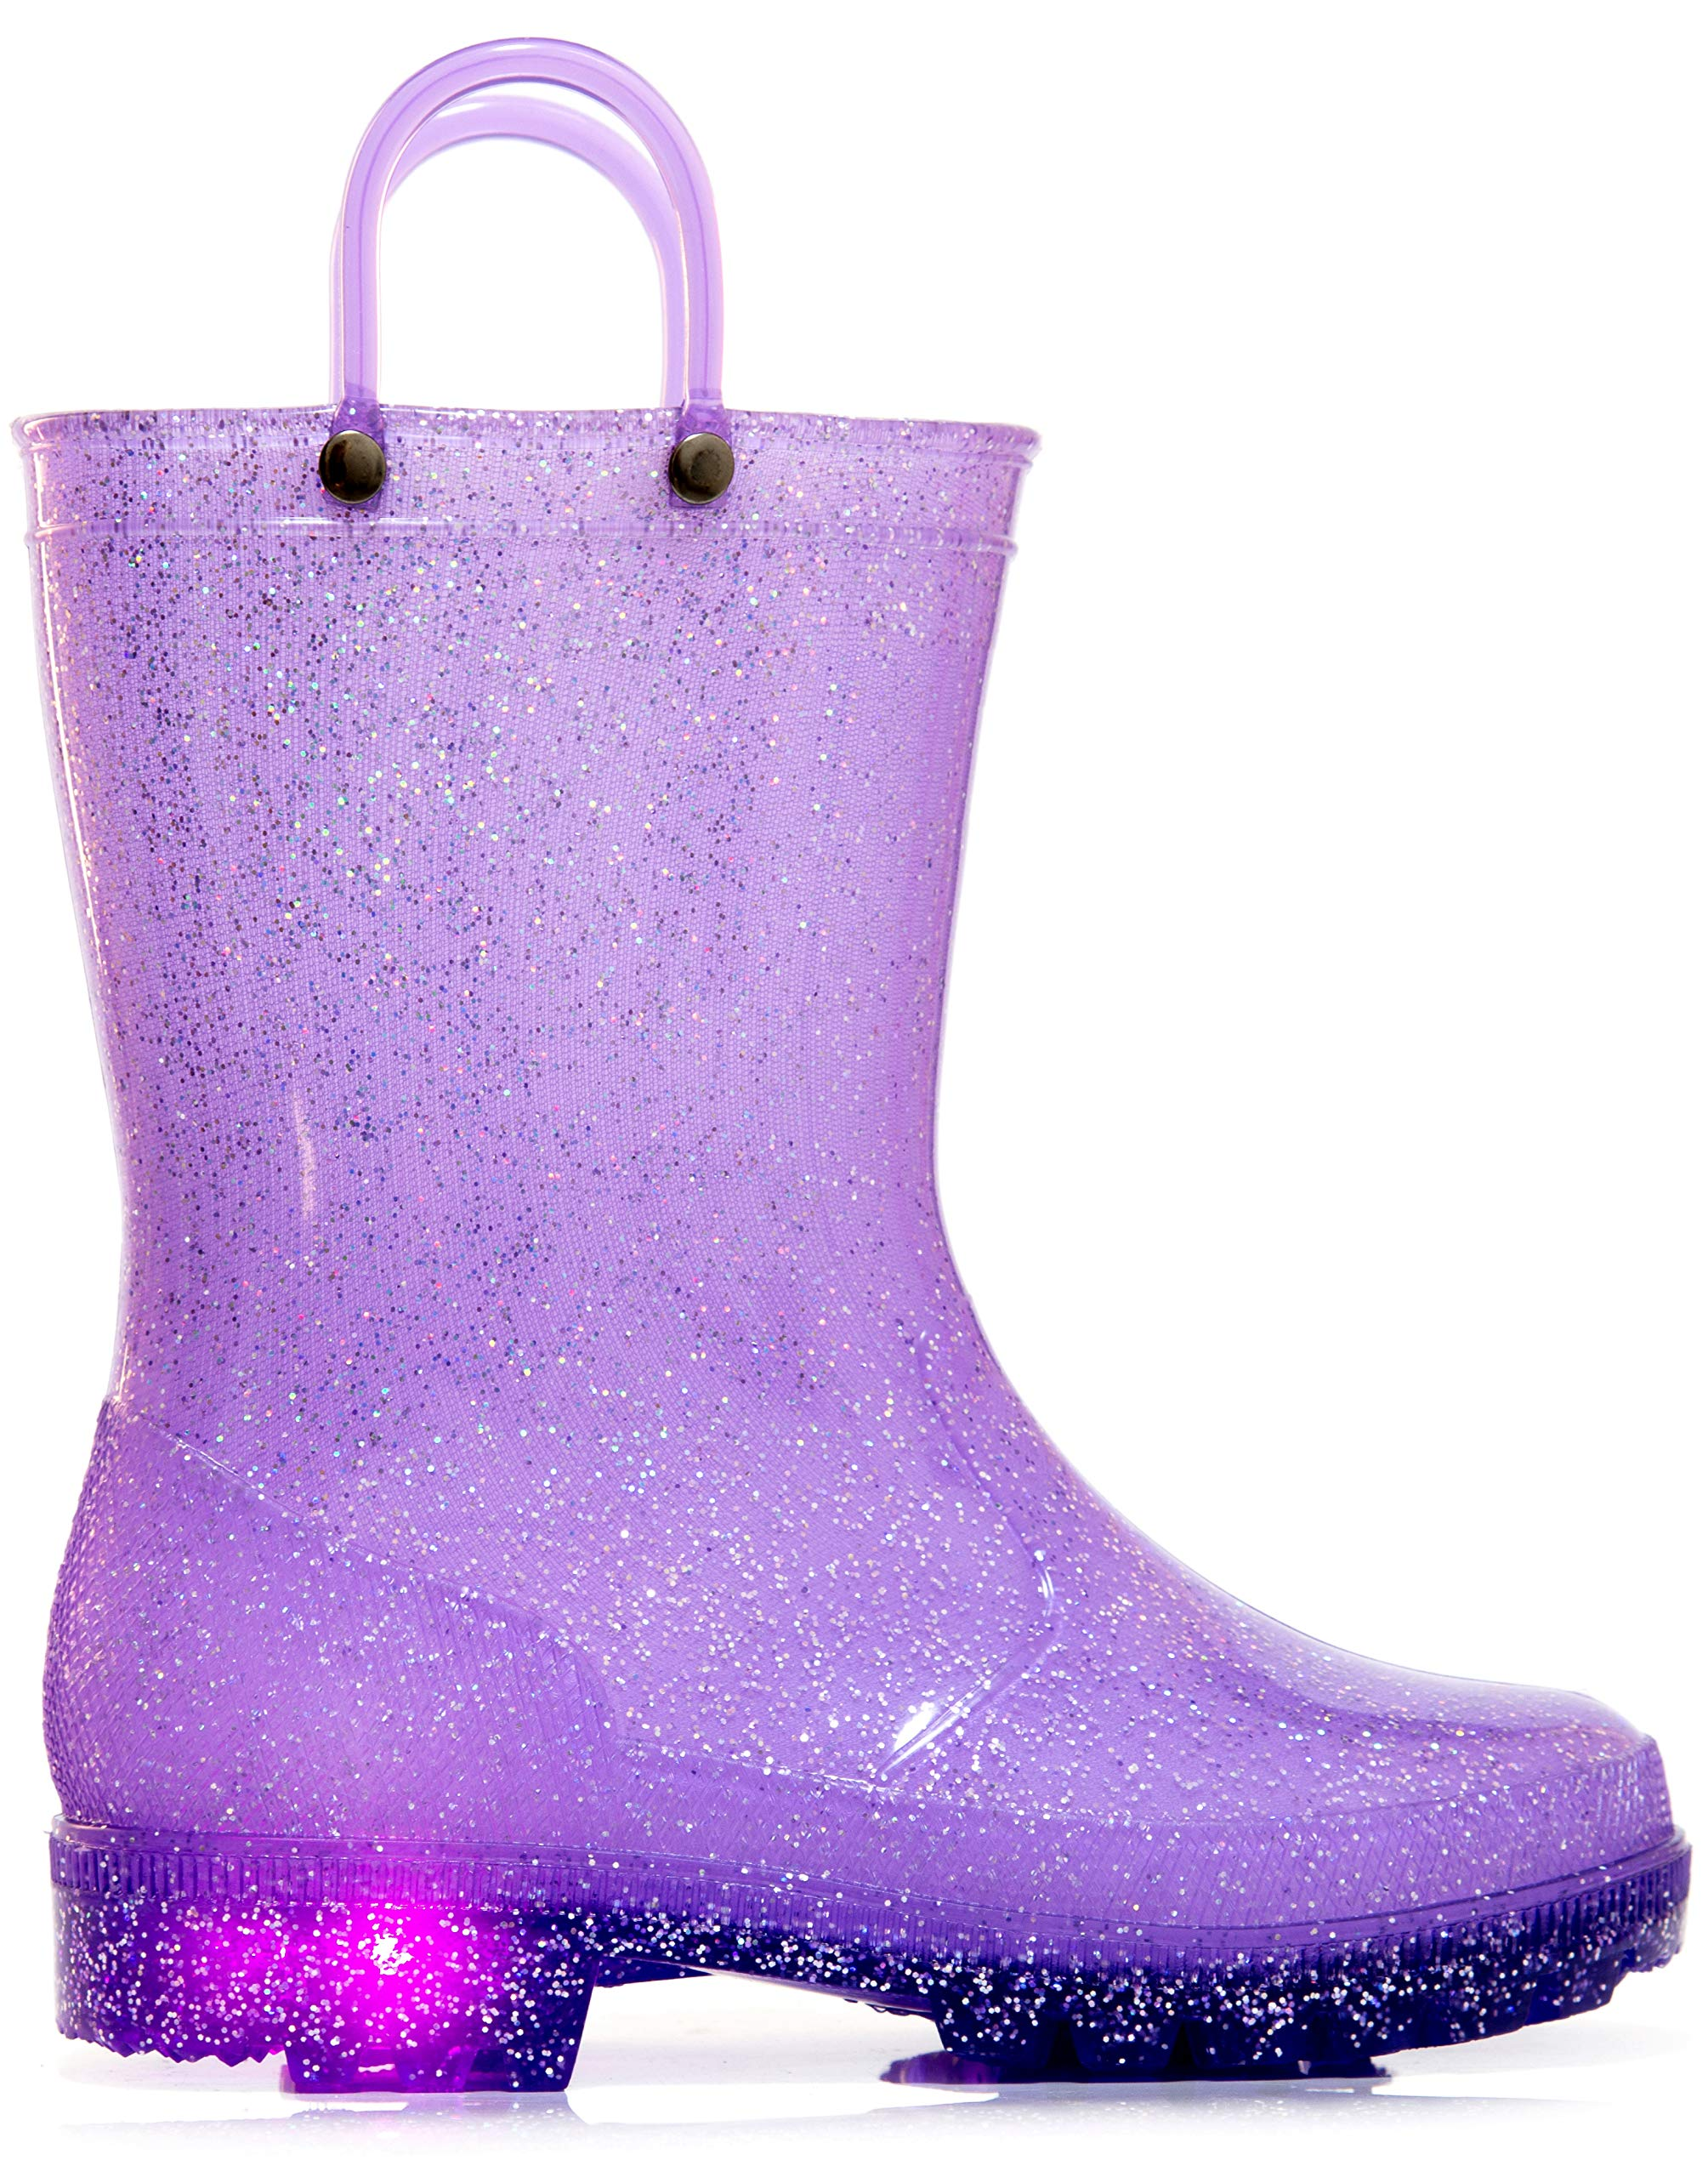 MOFEVER Toddler Girls Kids Light up Rain Boots Waterproof Shoes Glitter Lightweight Cute Lovely Funny with Easy-on Handles (Size 7,Purple)